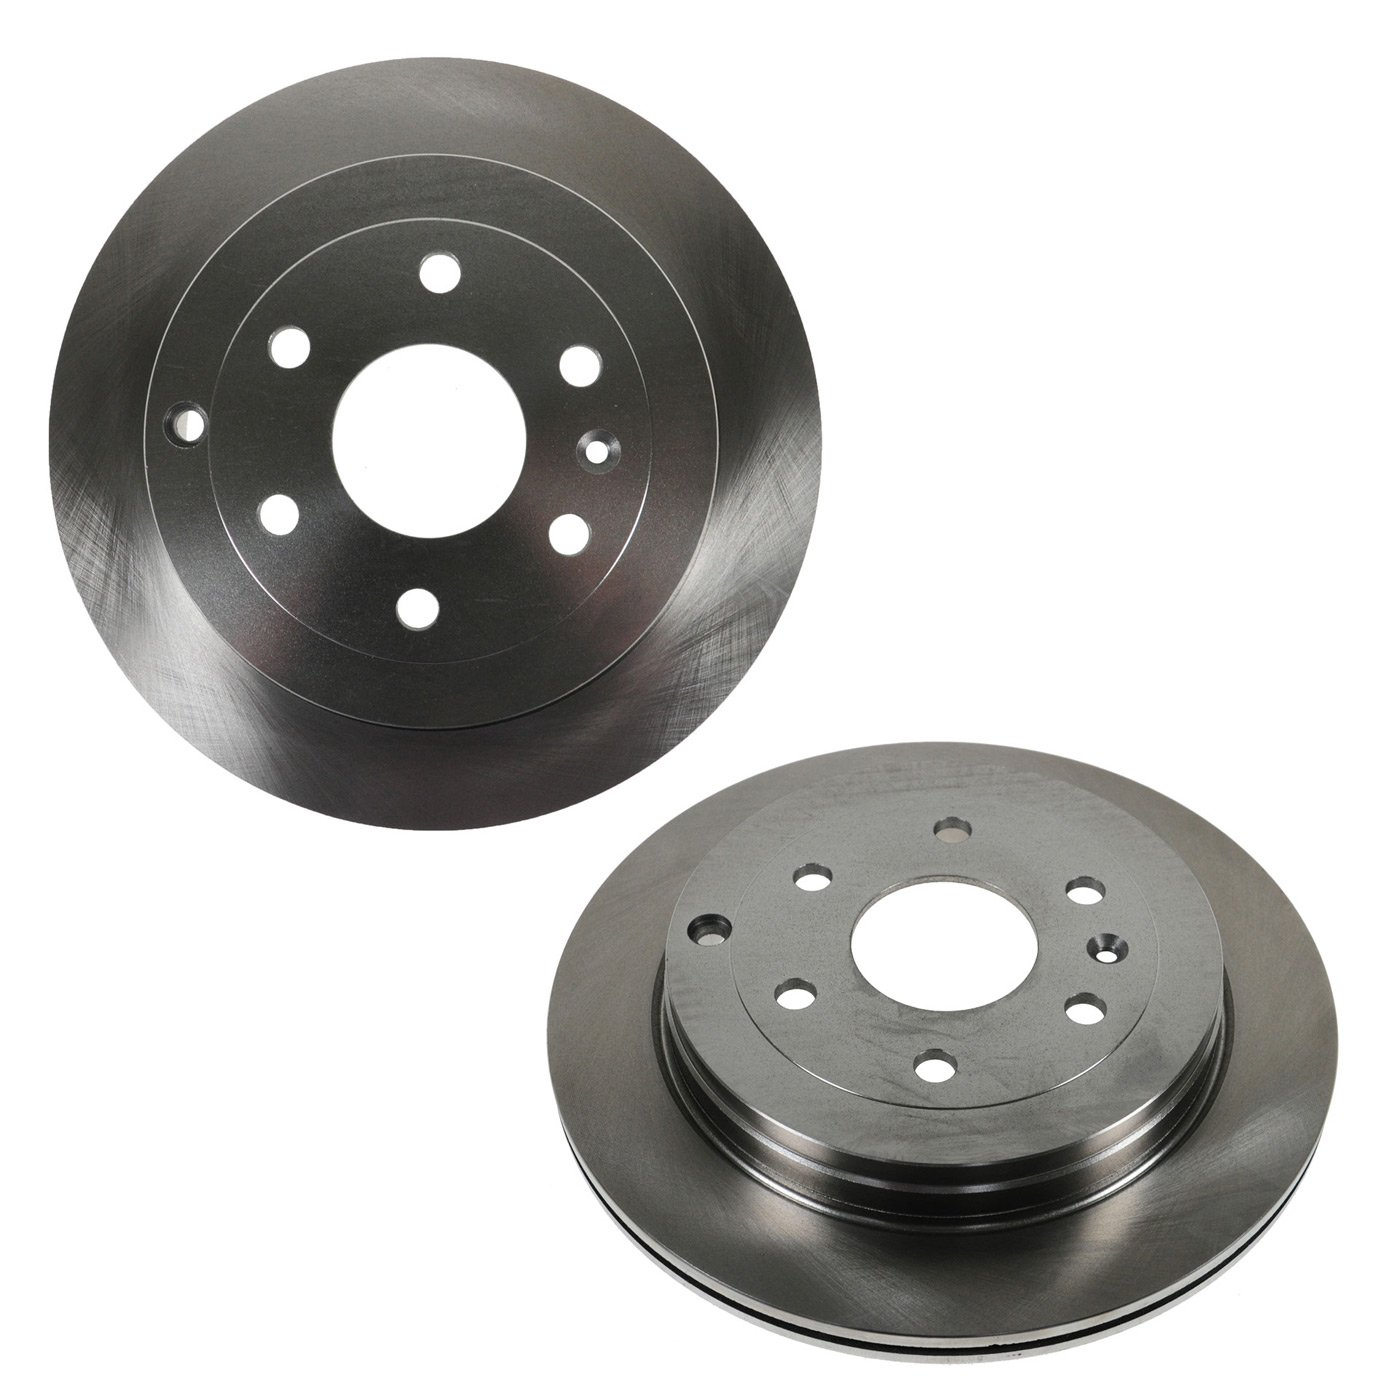 Disc Brake Rotor Rear Pair Set for Acadia Enclave Outlook Traverse